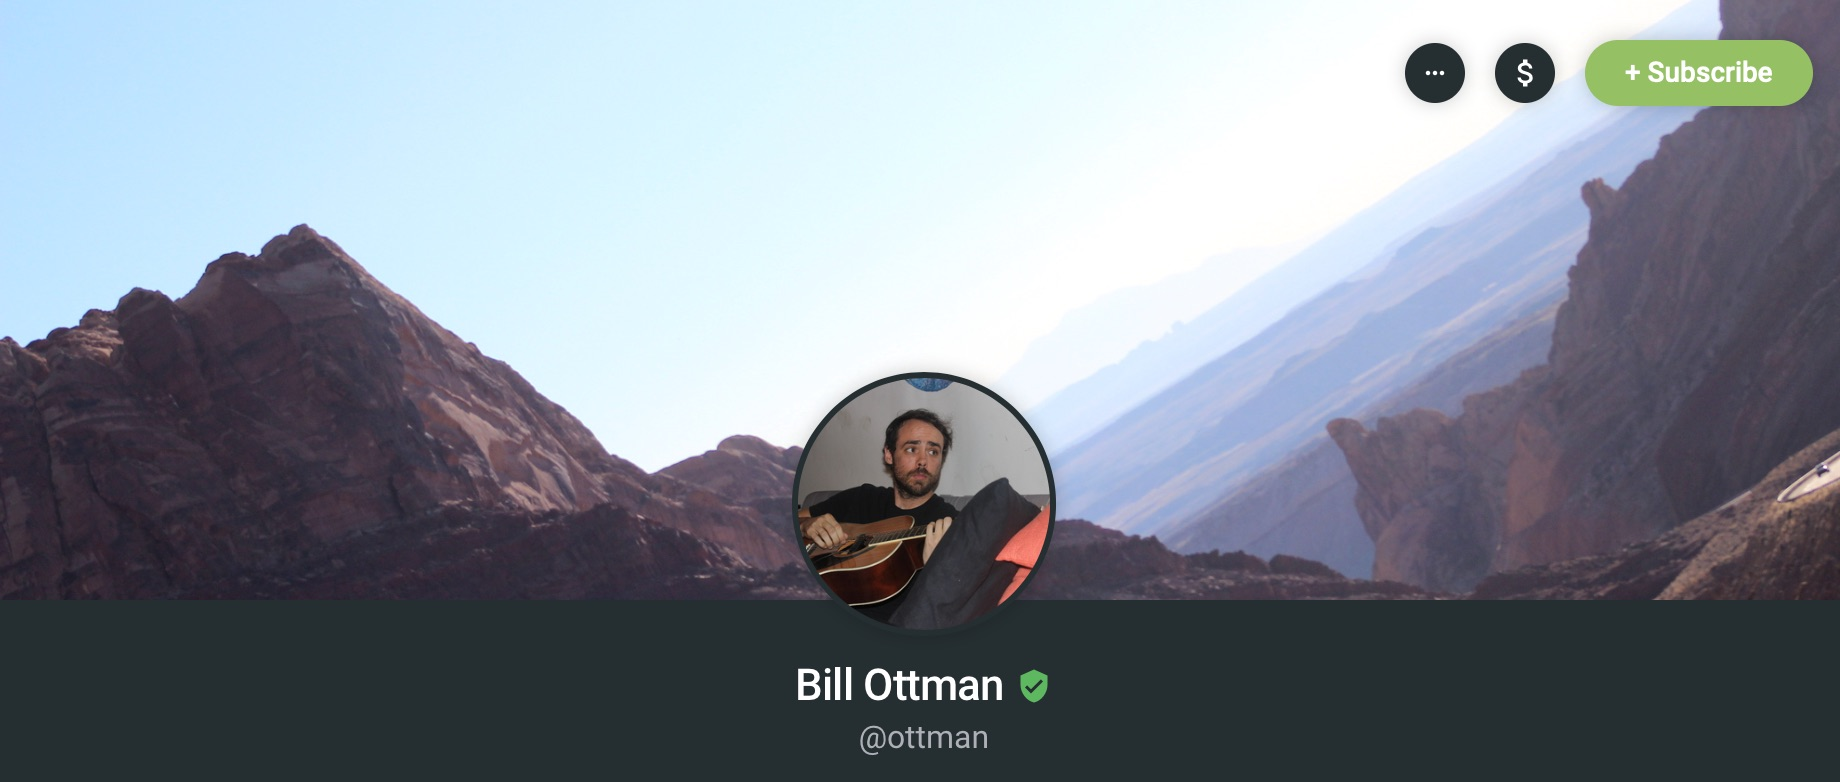 /the-abandonment-of-clean-algos-is-the-suicide-of-mainstream-social-media-minds-ceo-bill-ottman-7o483er0 feature image